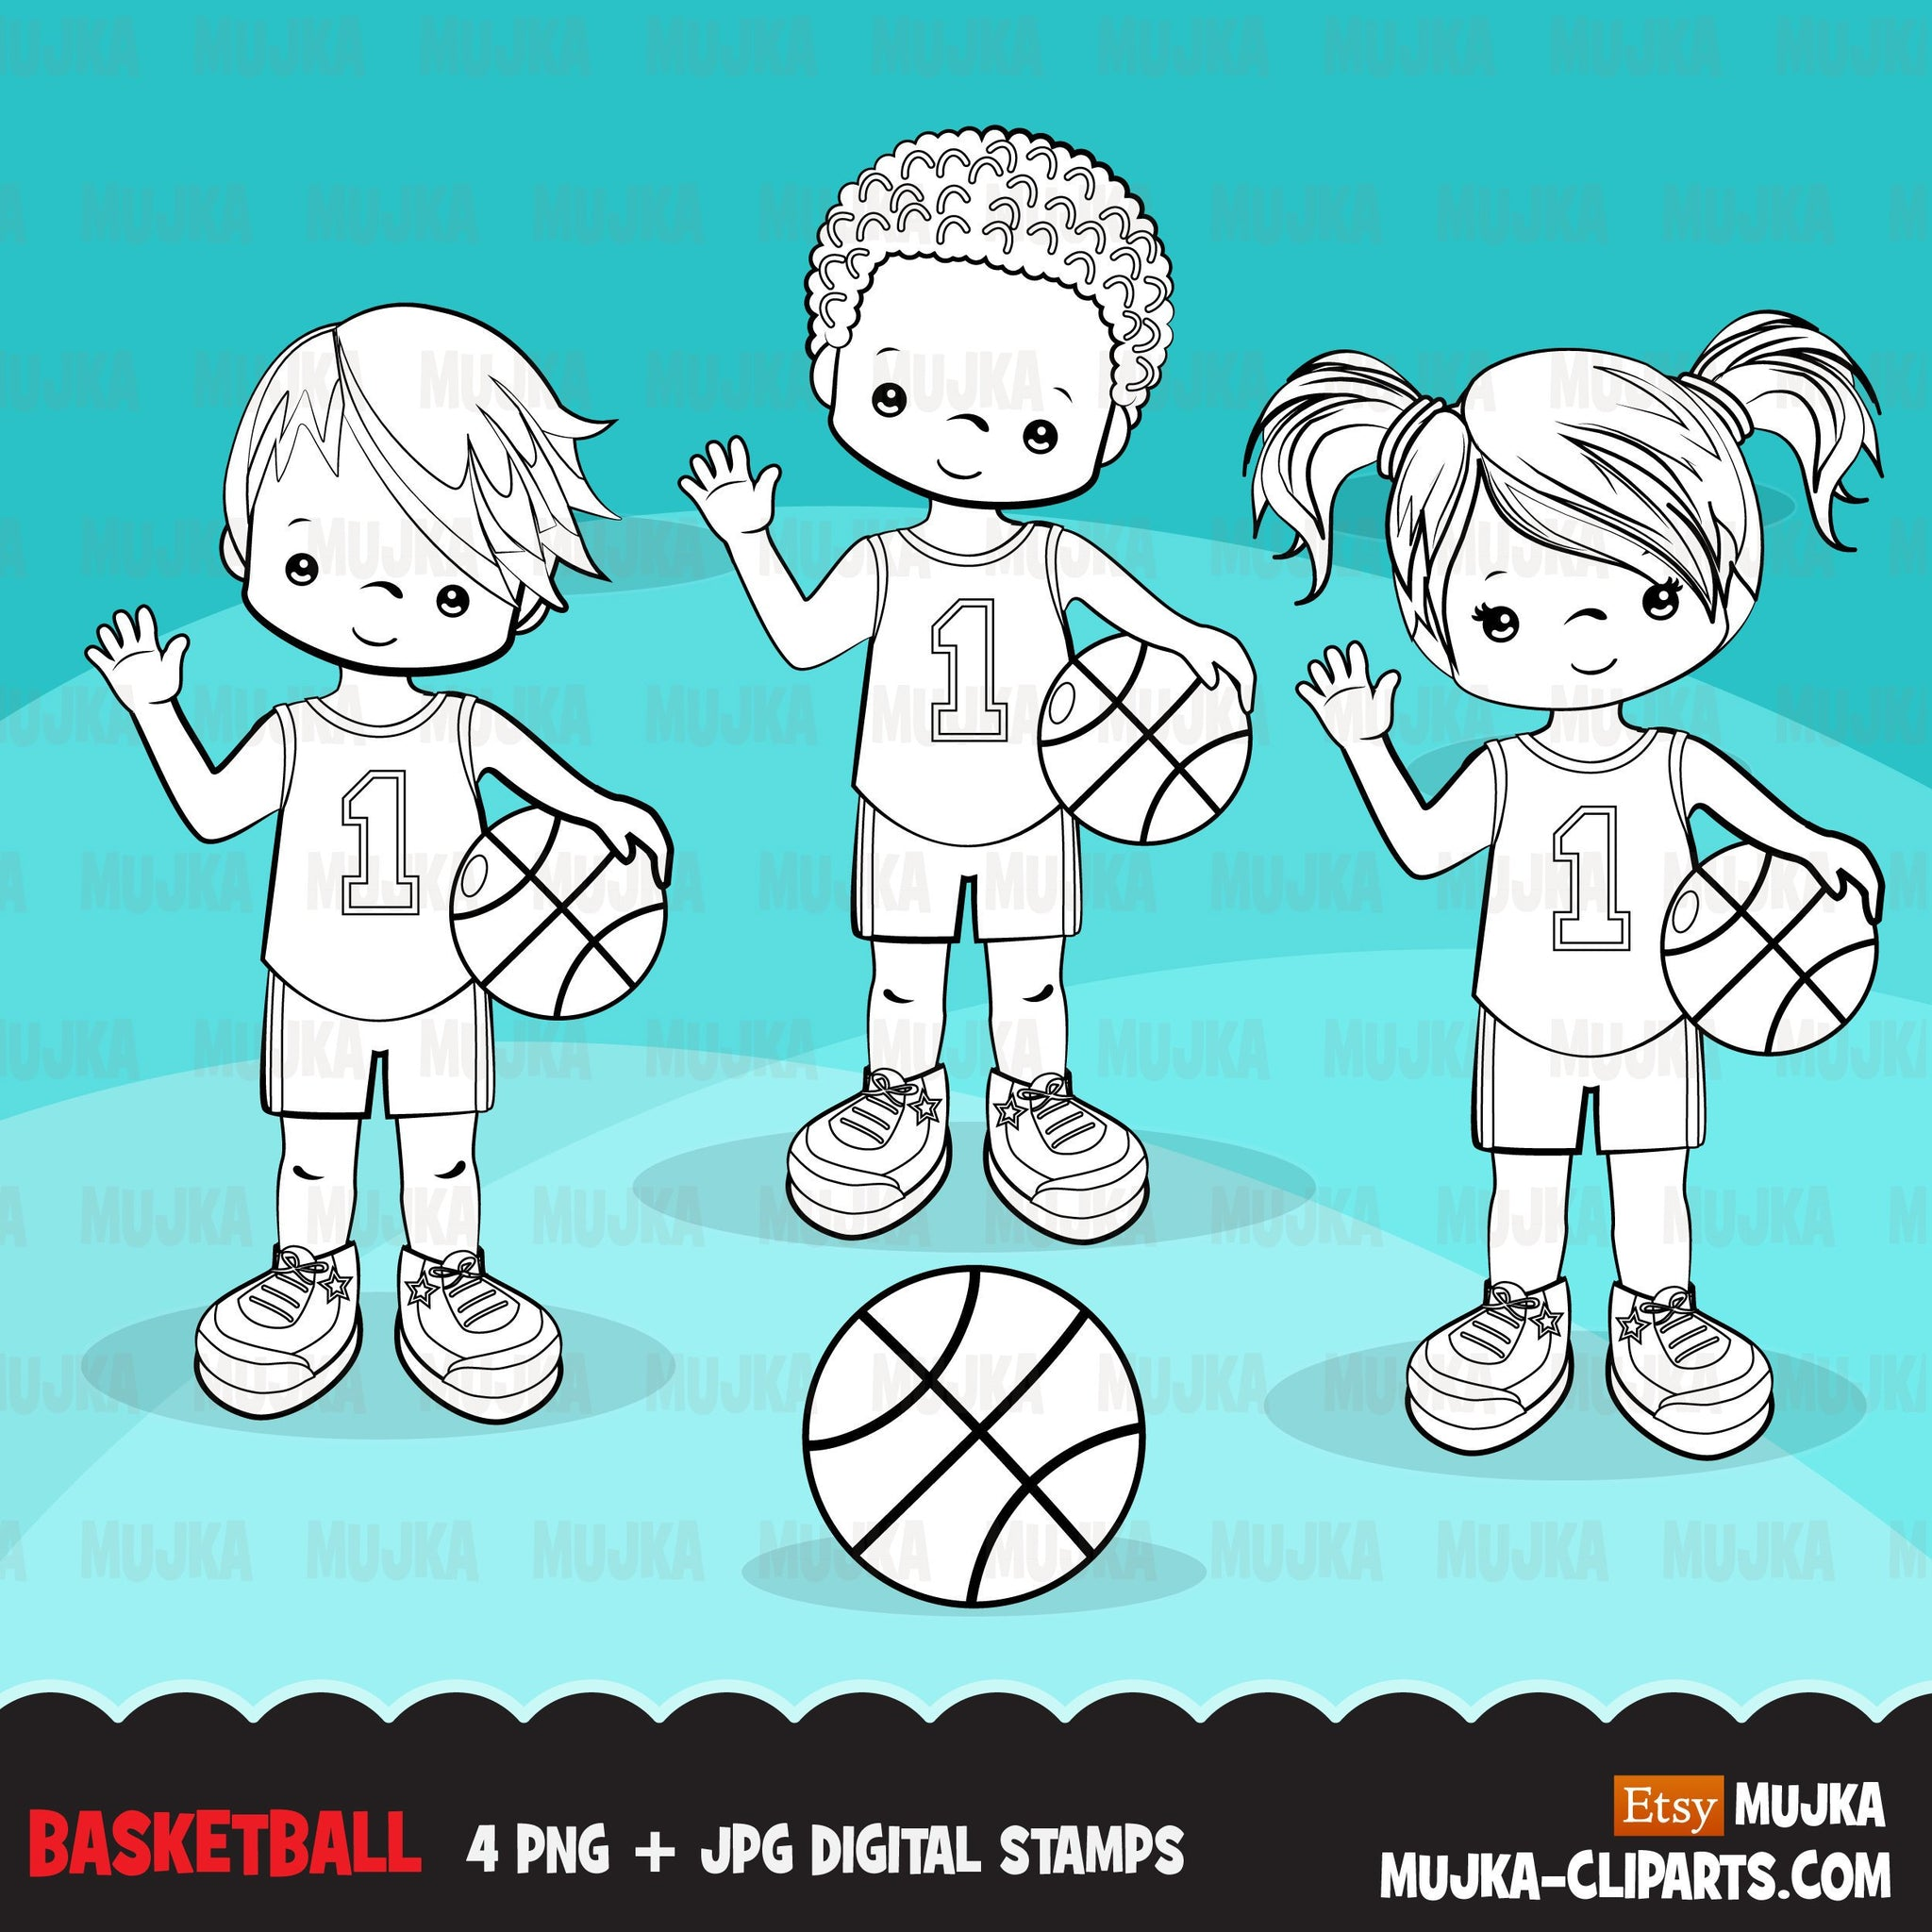 Basketball players Digital Stamps, Sports Graphics, B&W clip art outline